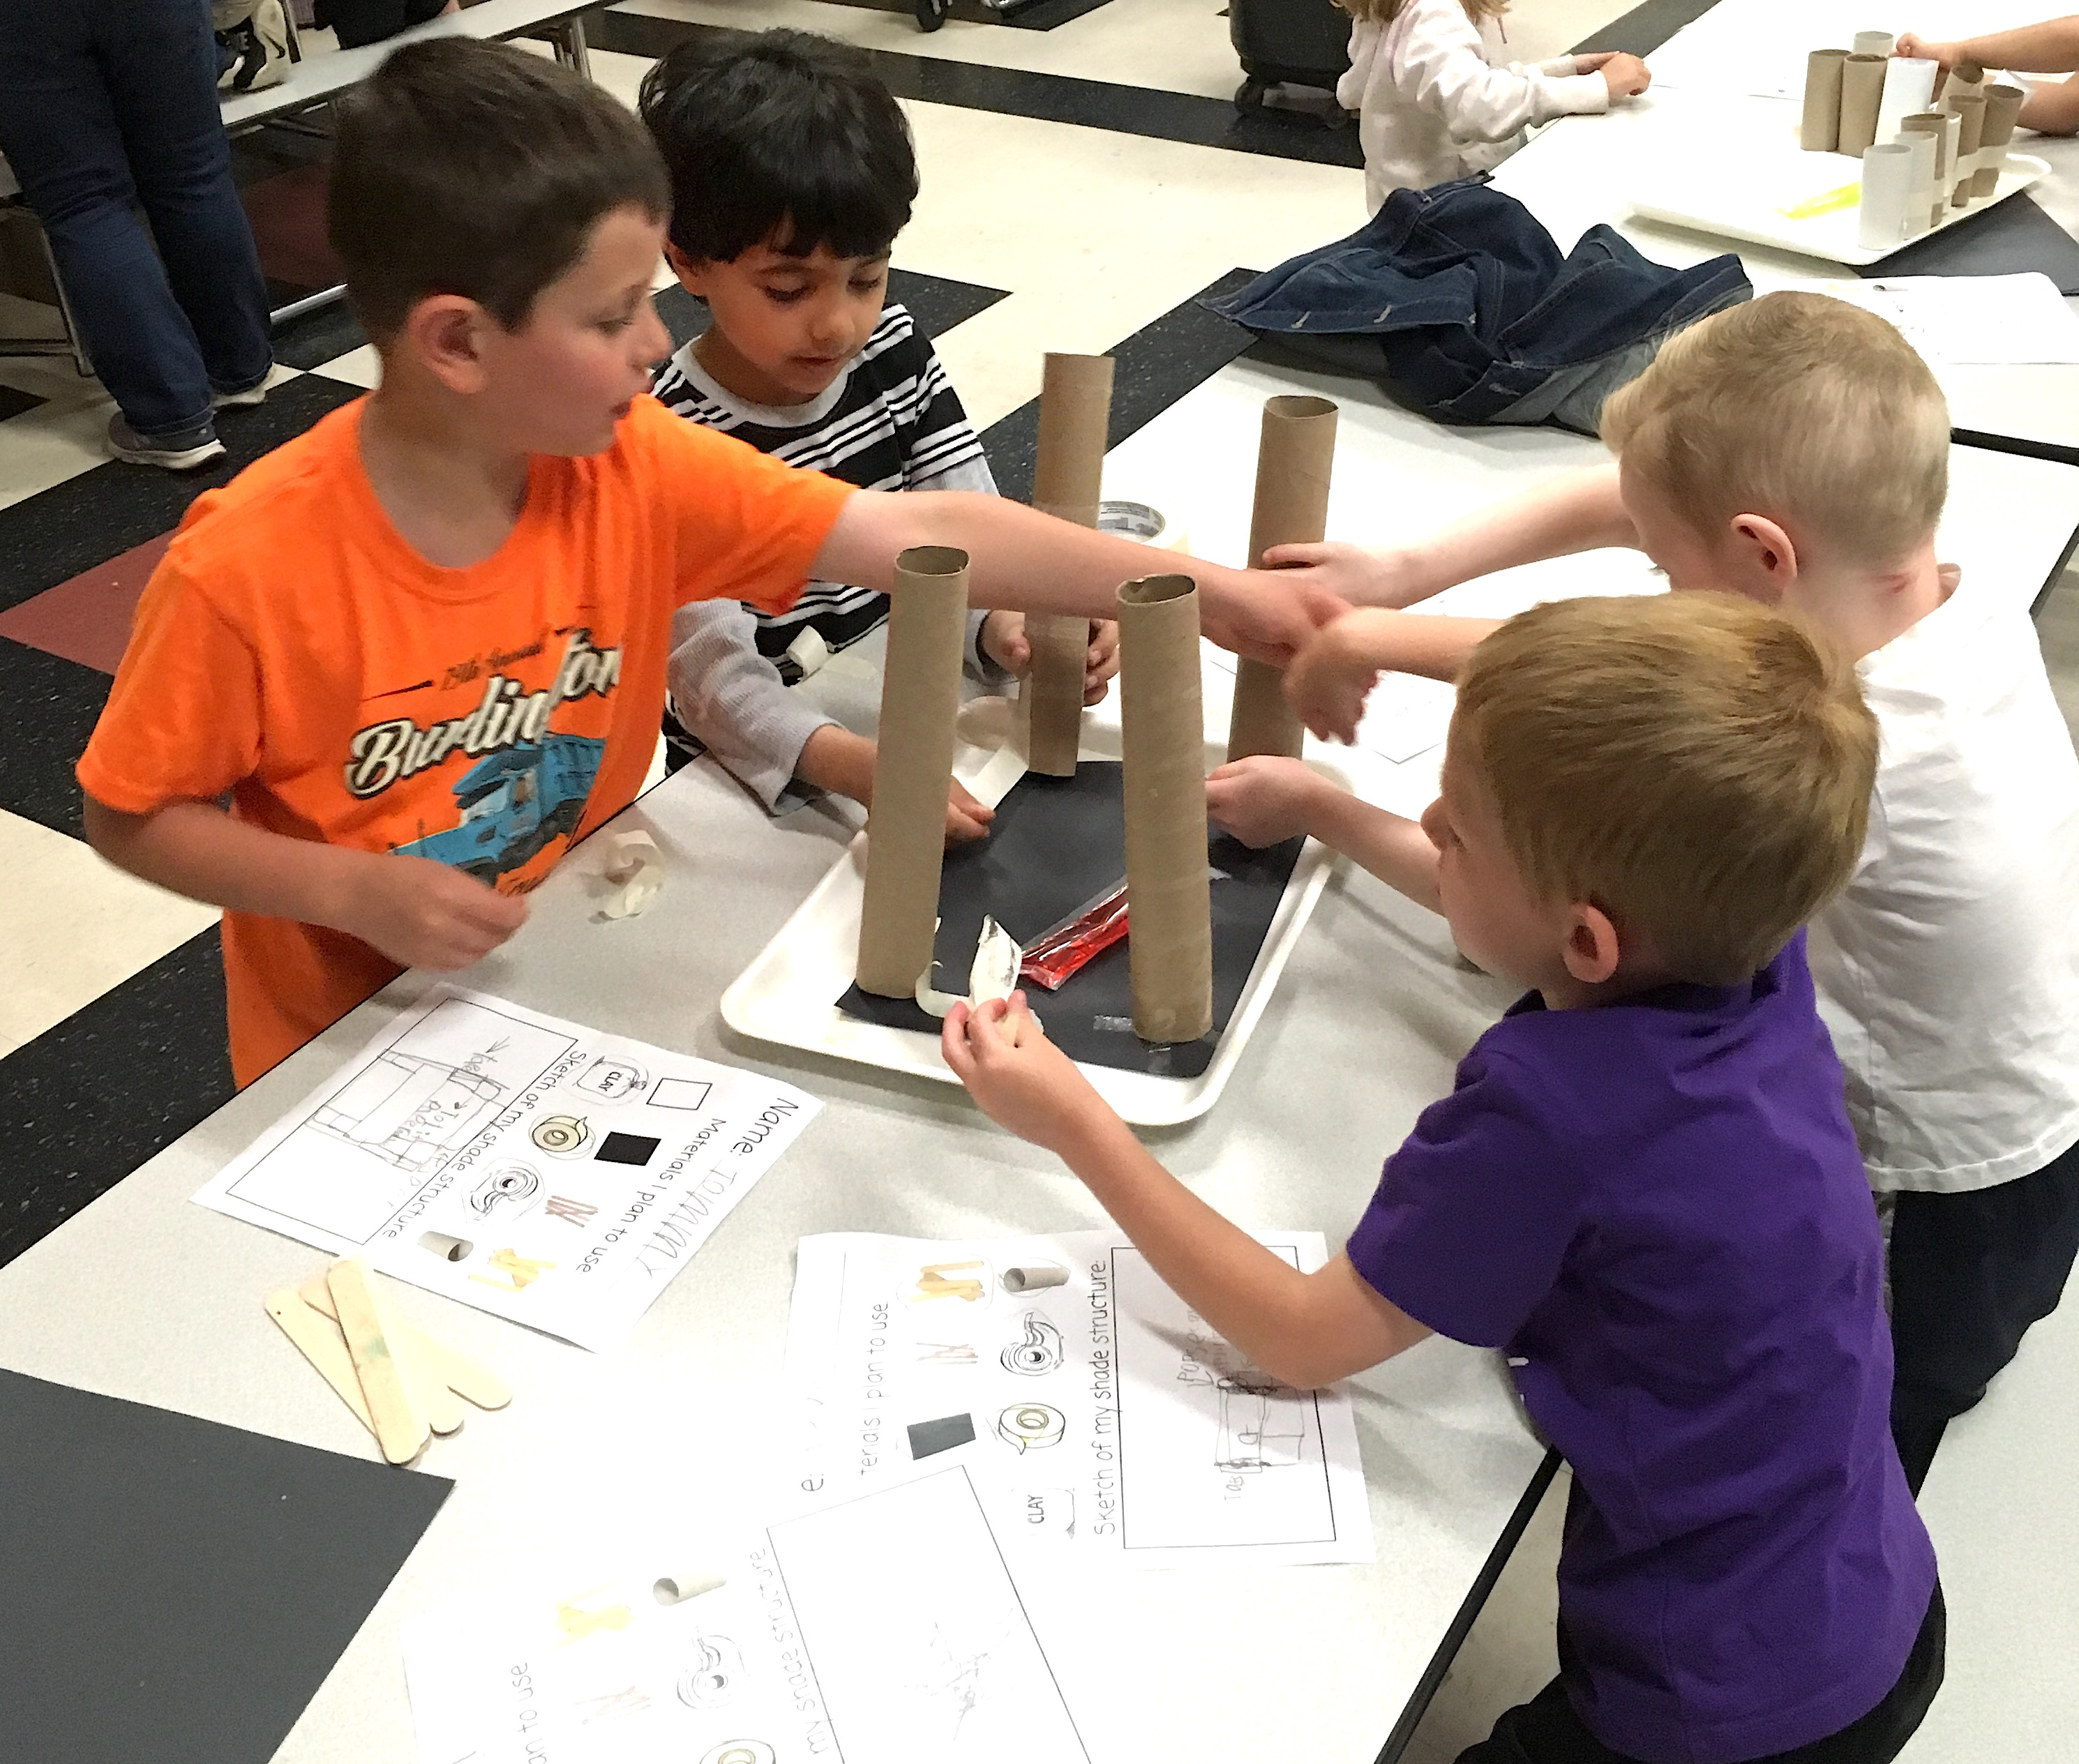 Students in Burlington Public Schools in Massachusetts have worked on phenomena-based projects for the past five years.